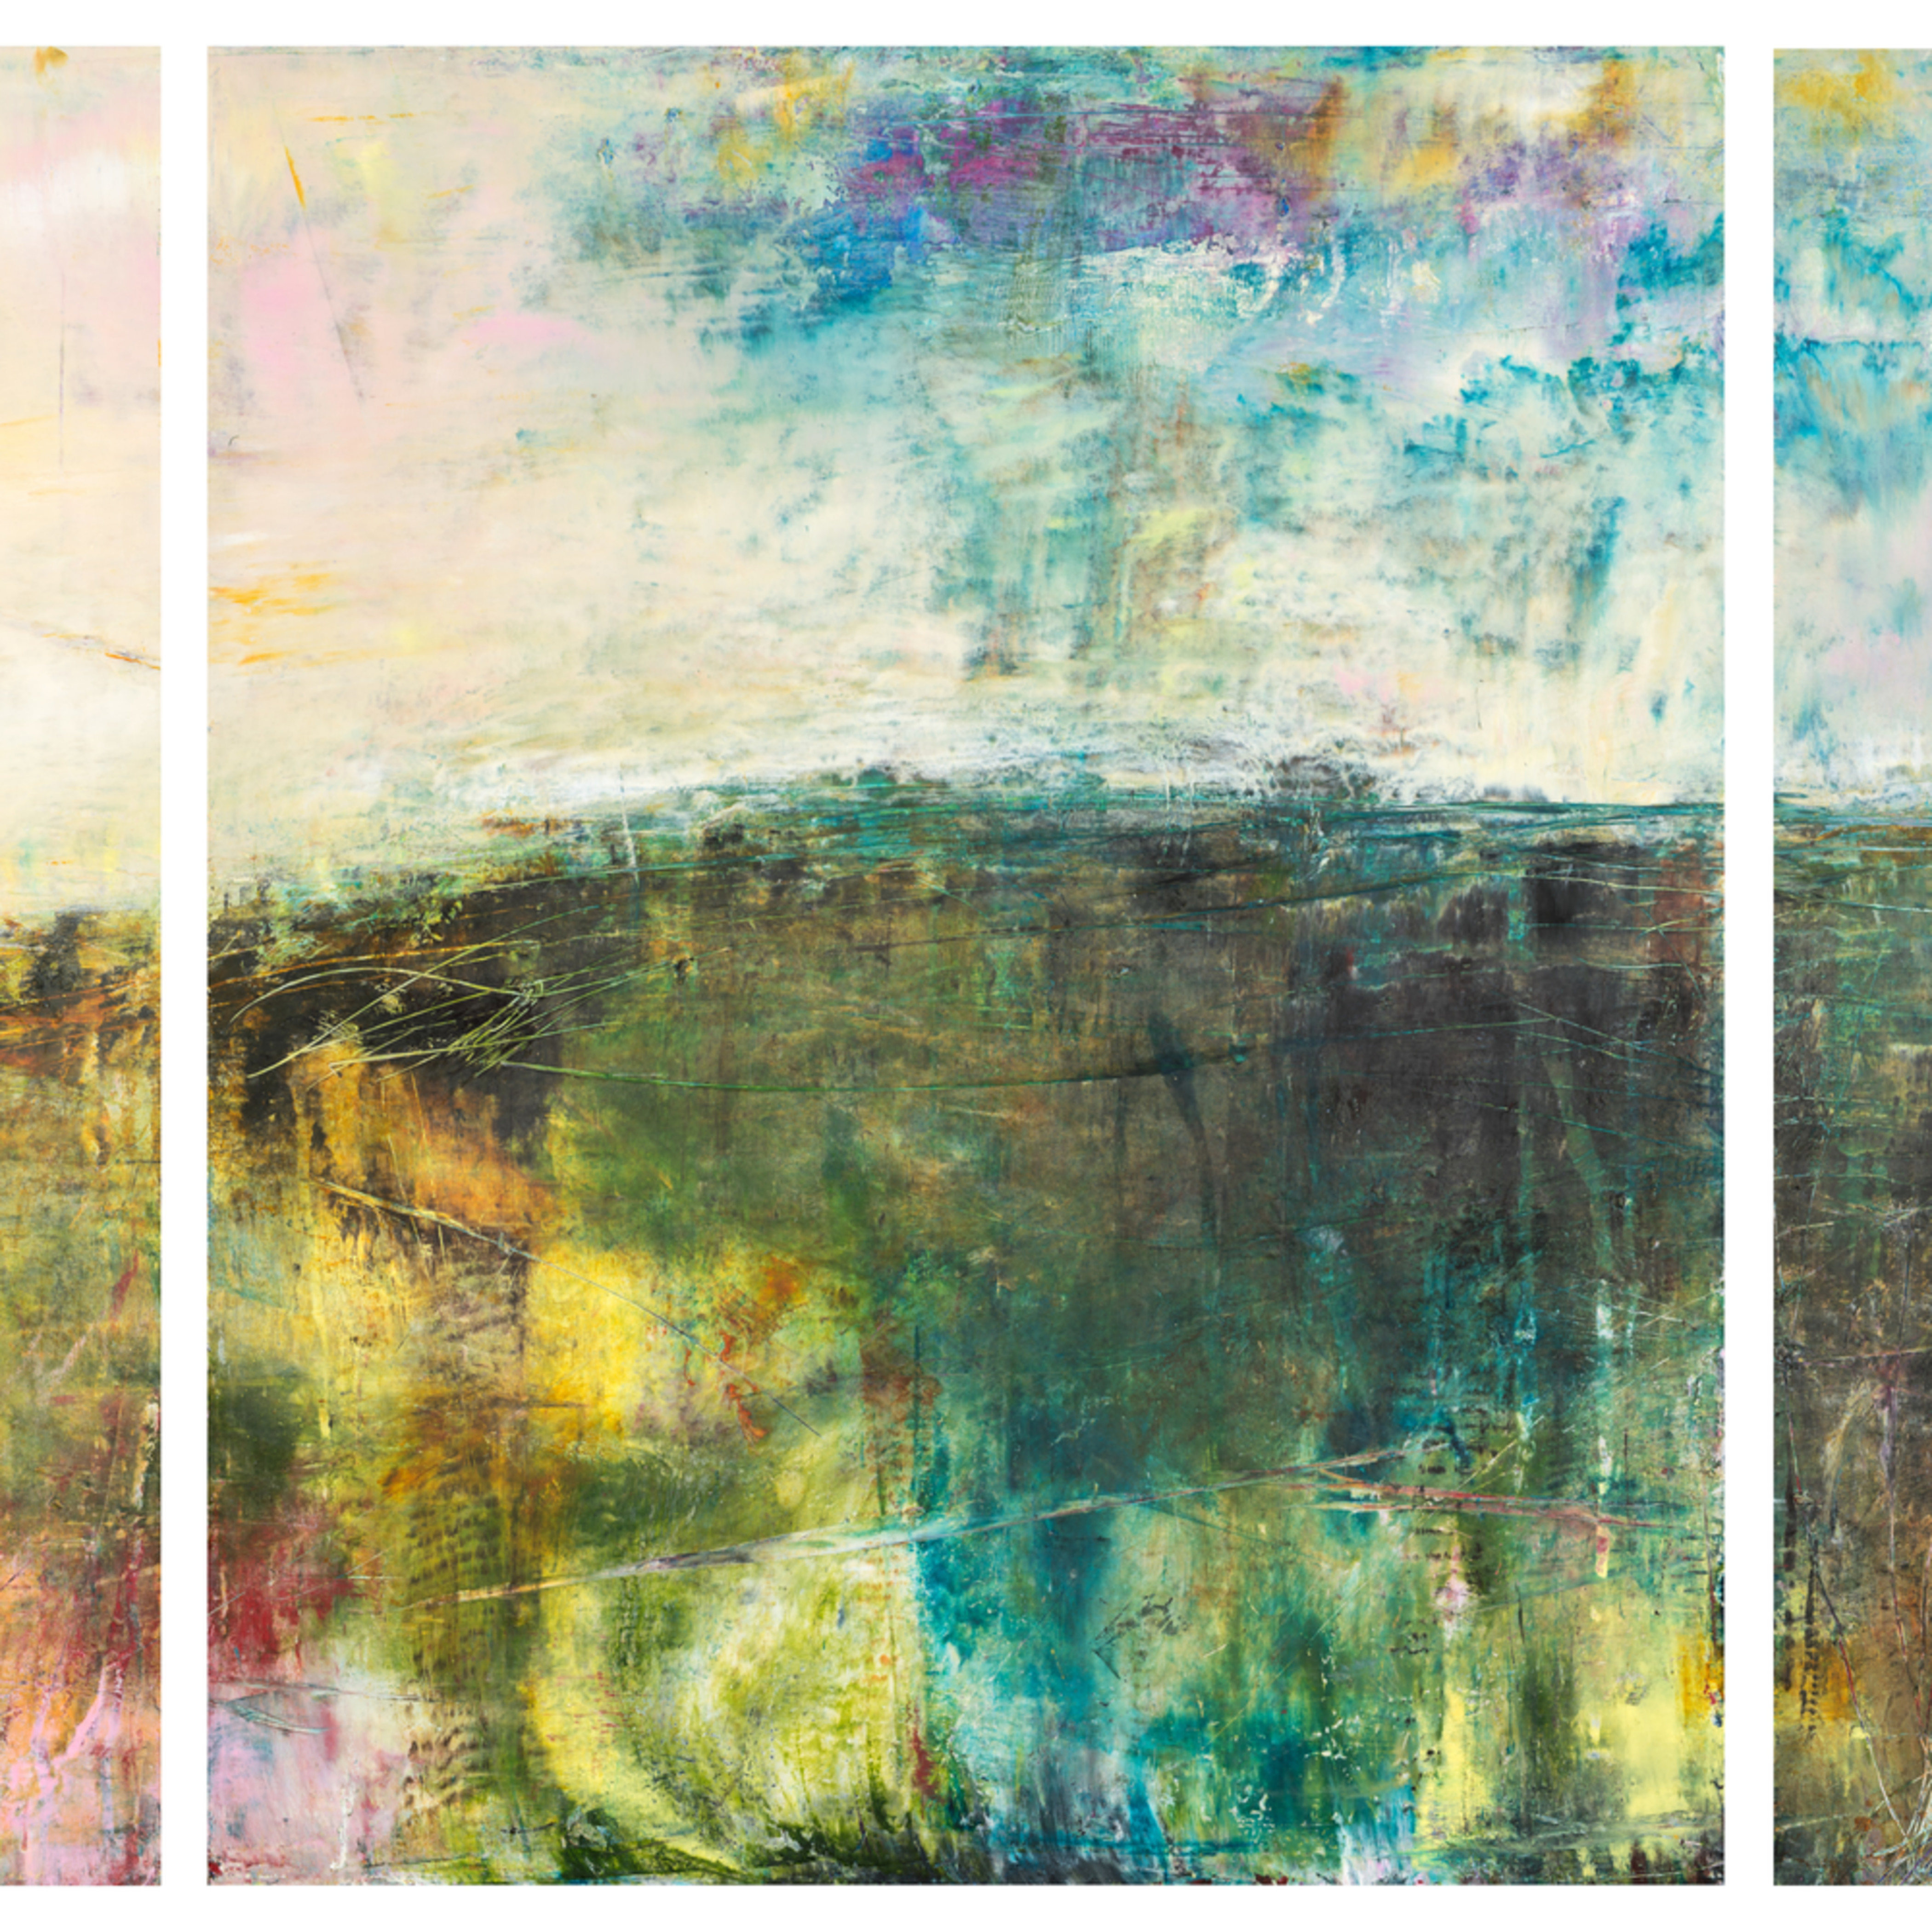 Eadaoin glynn 2019 land triptych oil cold wax on cradled panel 60x150cm gaps hires wukn5c